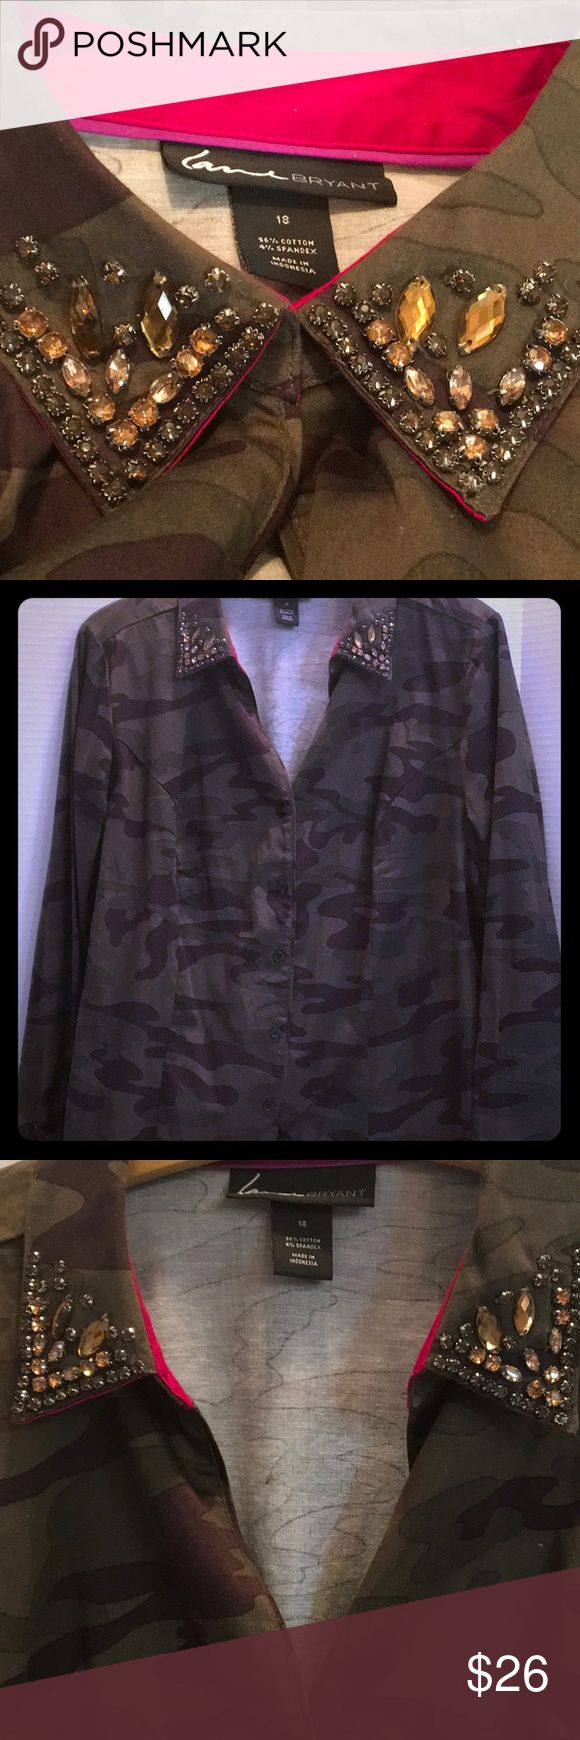 "LANE BRYANT Cotton Spandex Button Down CAMO SHIRT LANE BRYANT Camouflage Pattern Button Down shirt. Spandex & cotton give a comfy fit. Sleeves roll over to reveal pink/ magenta pop...Collar haas topaz & Gun Metal rhinestone shapes SIZE 18...24"" pit- pit...26 1/2"" shoulder - edge. EUC💕🌿🔆💕🌿🔆💕🌿🔆💕🌿 Lane Bryant Tops Button Down Shirts"